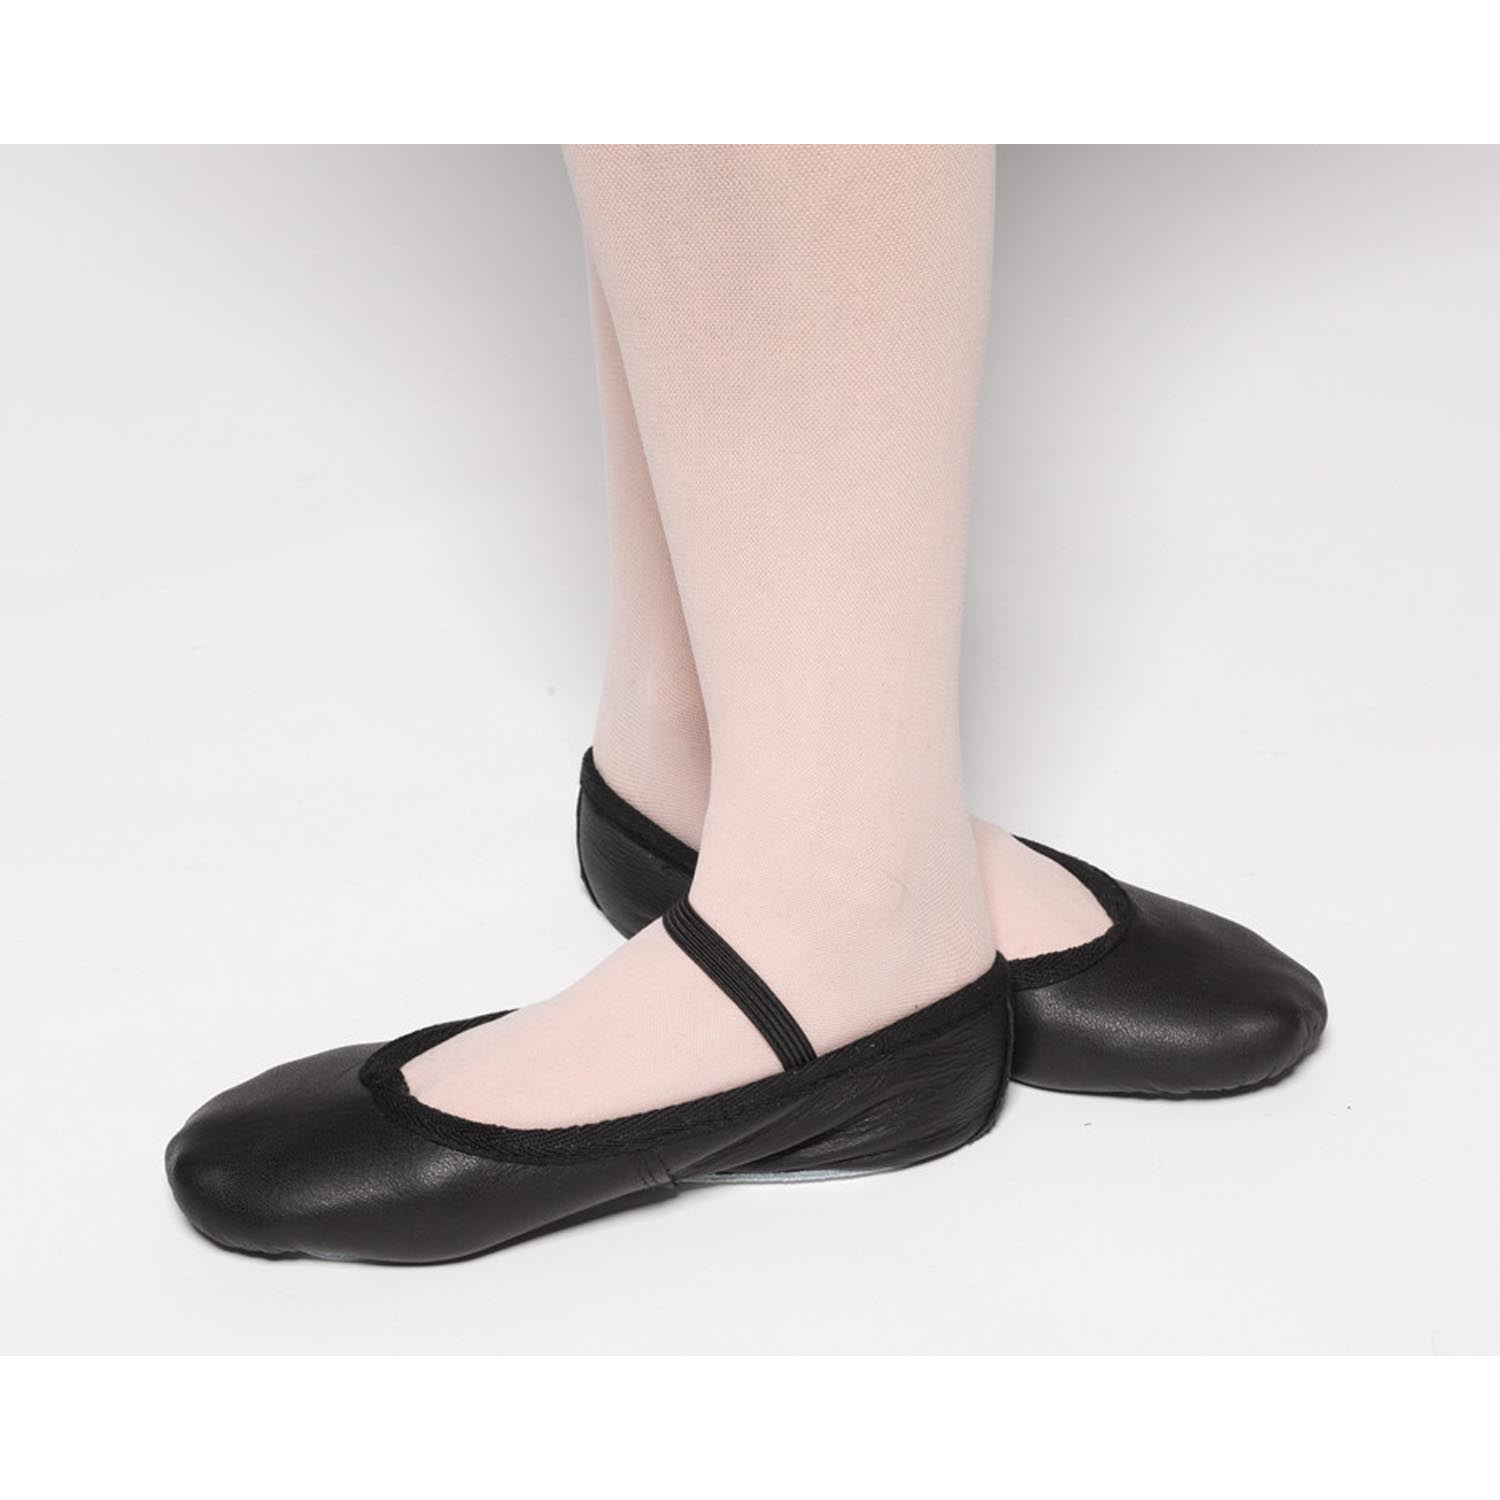 Shop Stylish and Durable Black Ballet Shoes